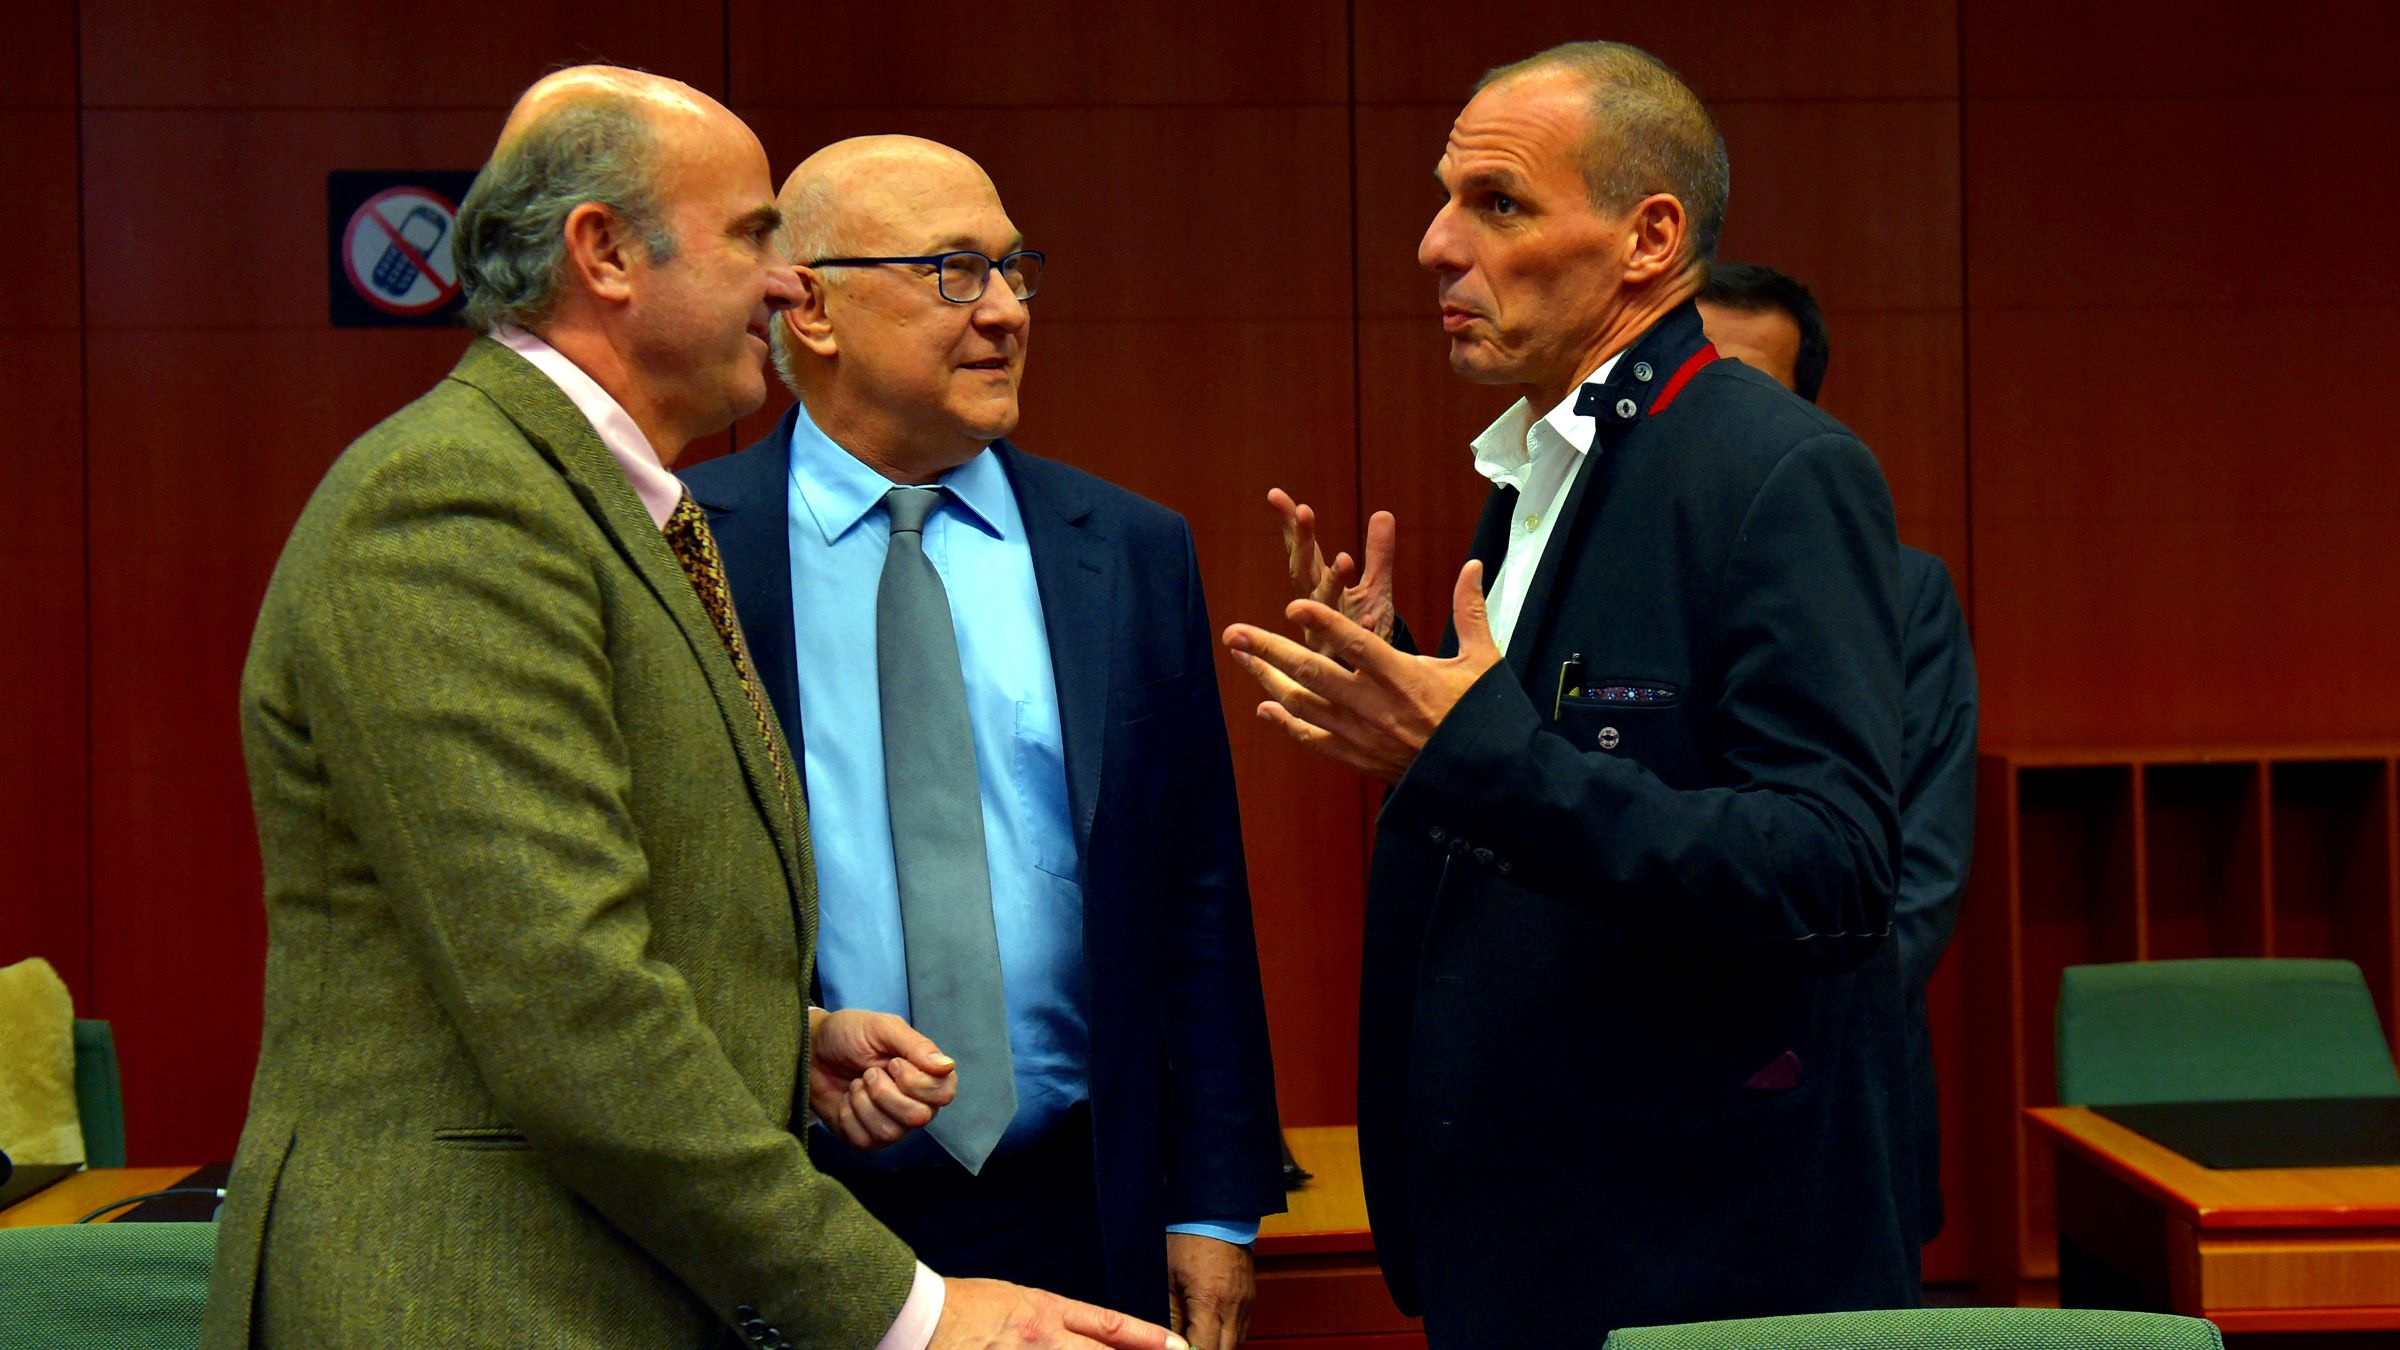 (L-R) Spain's Finance Minister Luis de Guindos and France's Finance Minister Michel Sapin chat with Greece's Finance Minister Yanis Varoufakis during an extraordinary euro zone finance ministers meeting (Eurogroup) to discuss Athens' plans to reverse austerity measures agreed as part of its bailout, in Brussels February 20, 2015. Euro zone finance ministers reached an agreement on Friday to extend heavily indebted Greece's financial rescue by four months, officials on both sides said.